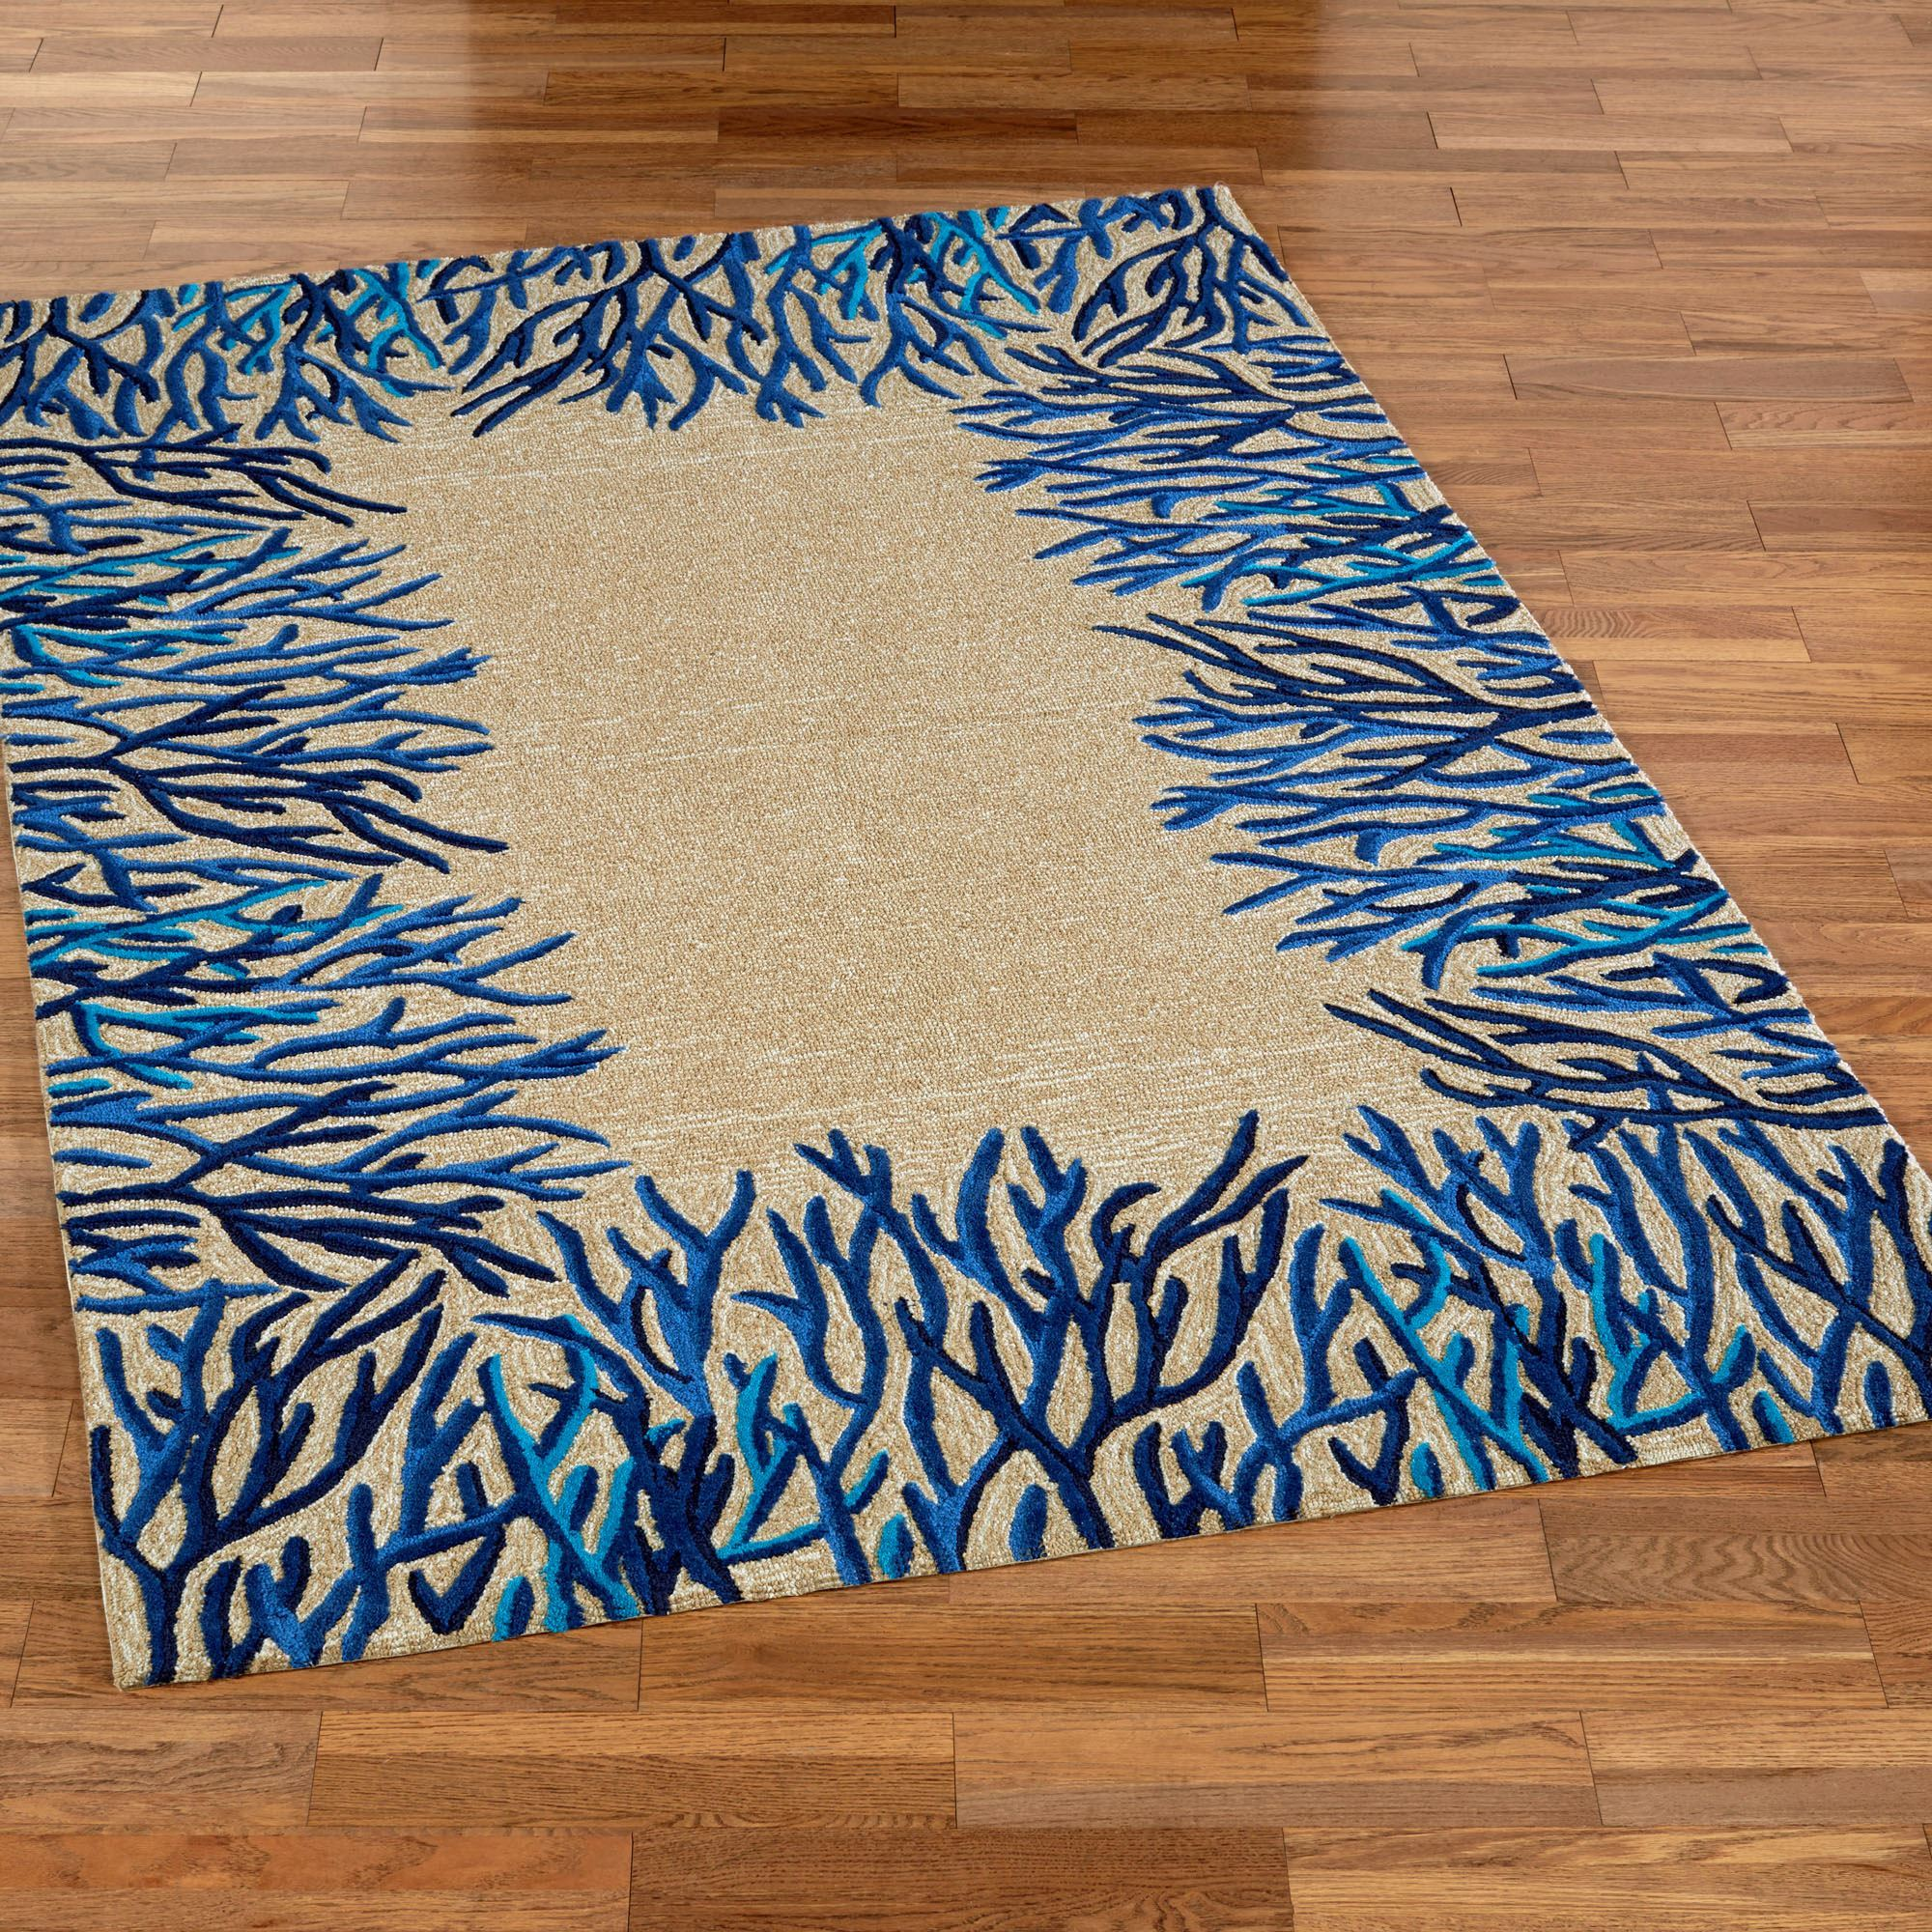 Blue Coral Reef Indoor Outdoor Area Rugs